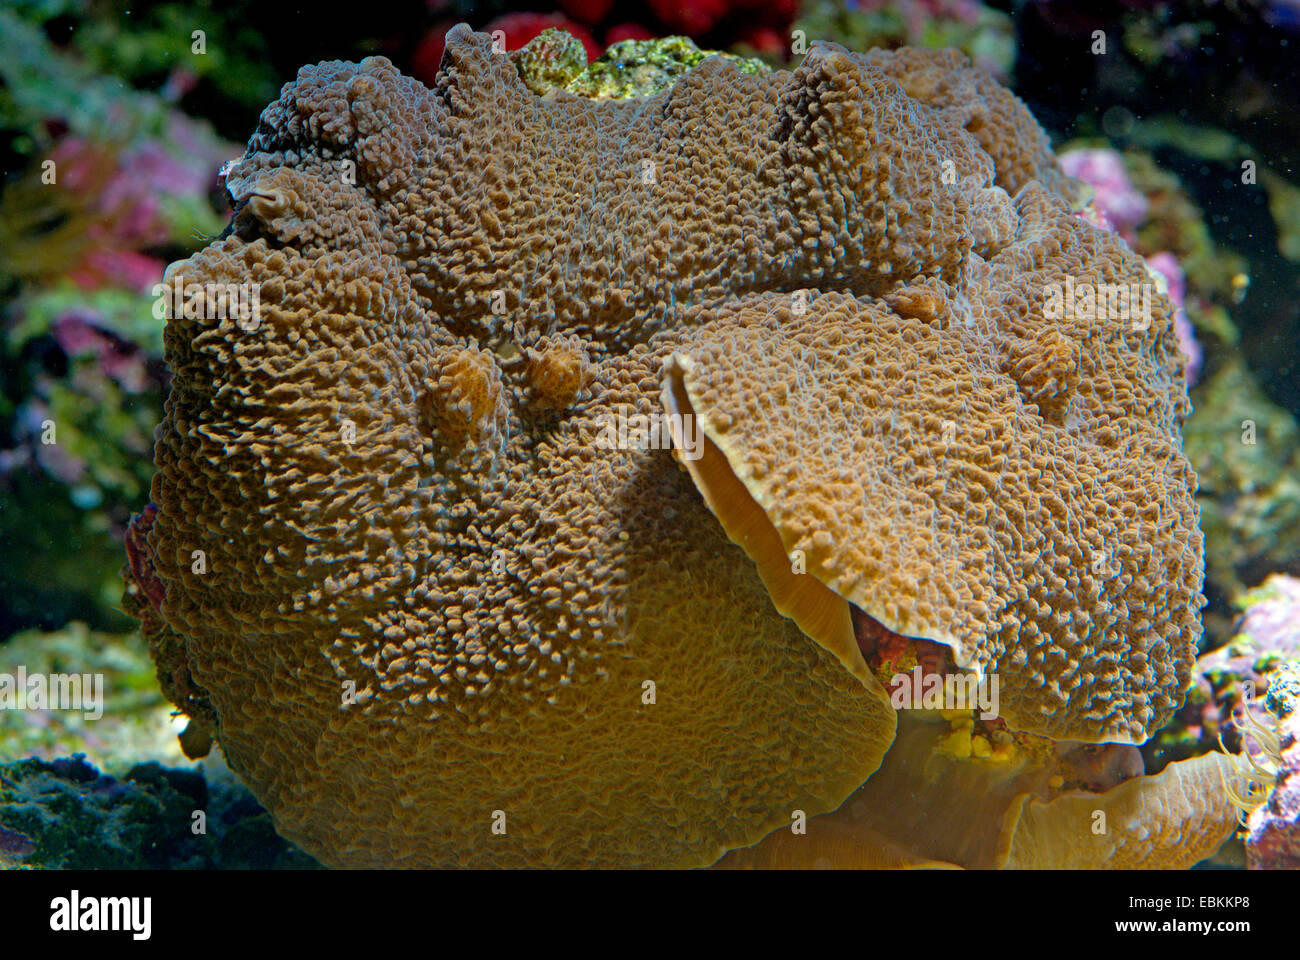 Mushroom Anemone (Rhodactis spec.), colony - Stock Image